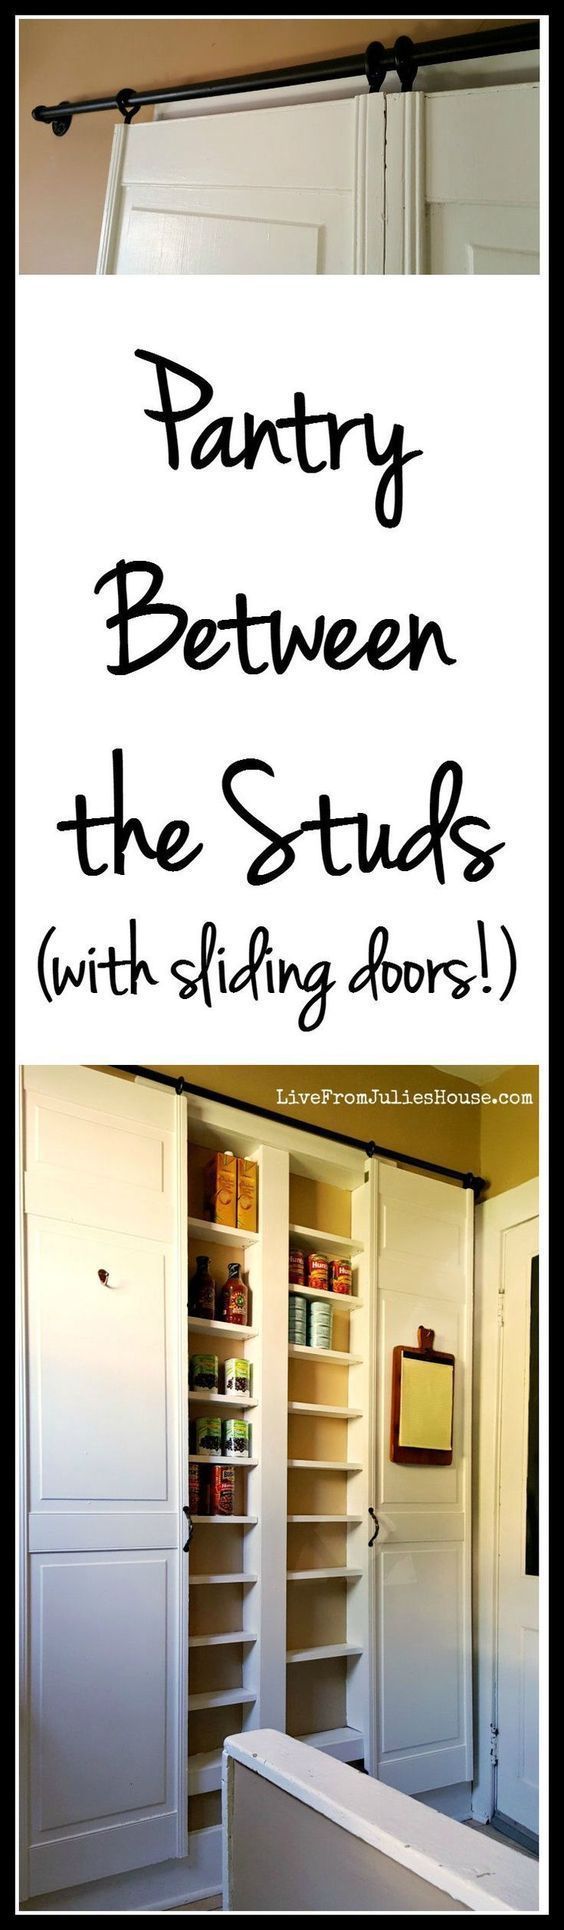 802 best DIY - Clever Ideas images on Pinterest | Arquitetura, Baby ...